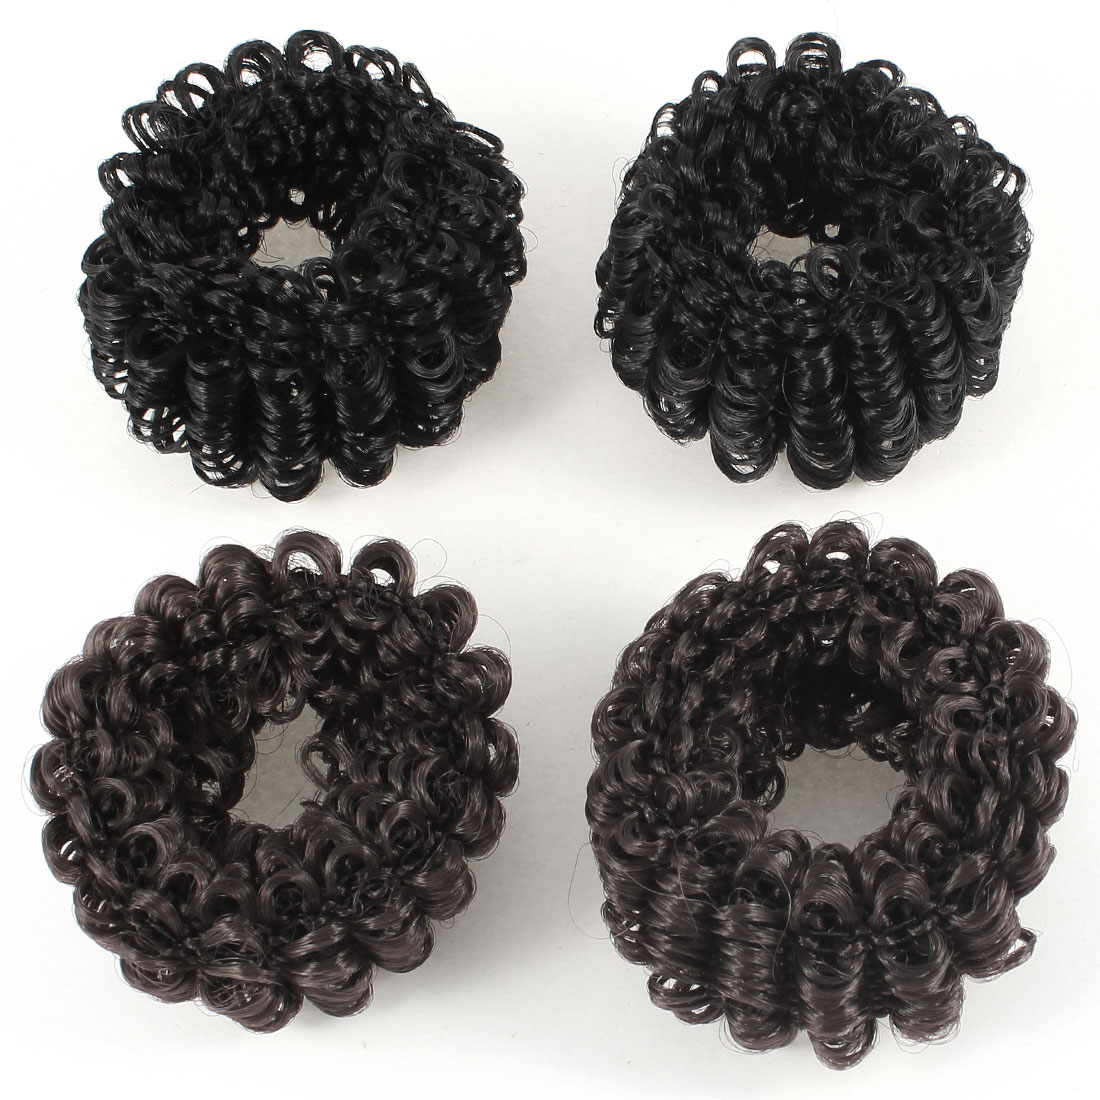 4 Pcs Women Brown Black DIY Hairstyle Curly Faux Hair Bun Hairpiece Wig